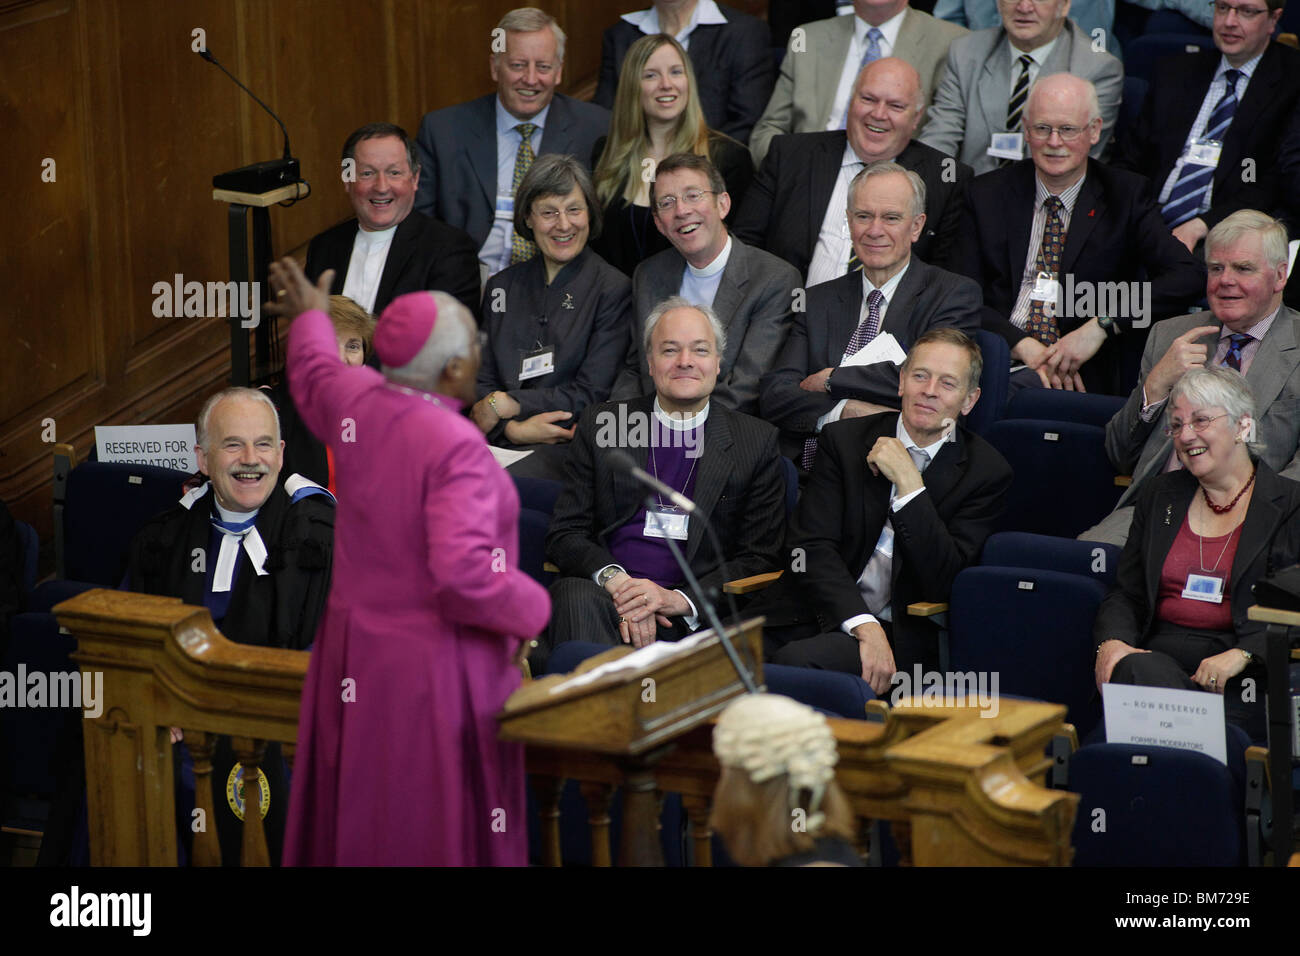 Archbishop Desmond Tutu addresses The 2009 General Assembly of the Church of Scotland. - Stock Image